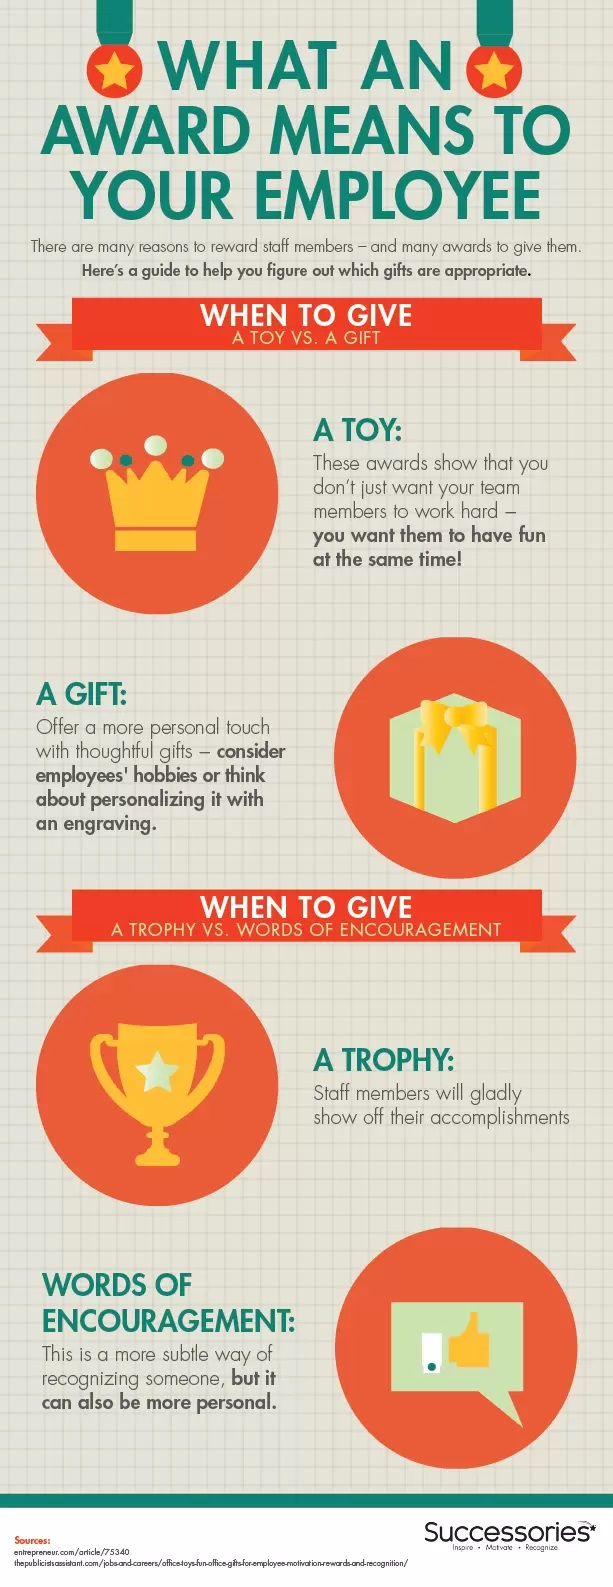 What An Award Means To Your Employee #infographic #Award #Employee Award #infographics #Workplace #Success